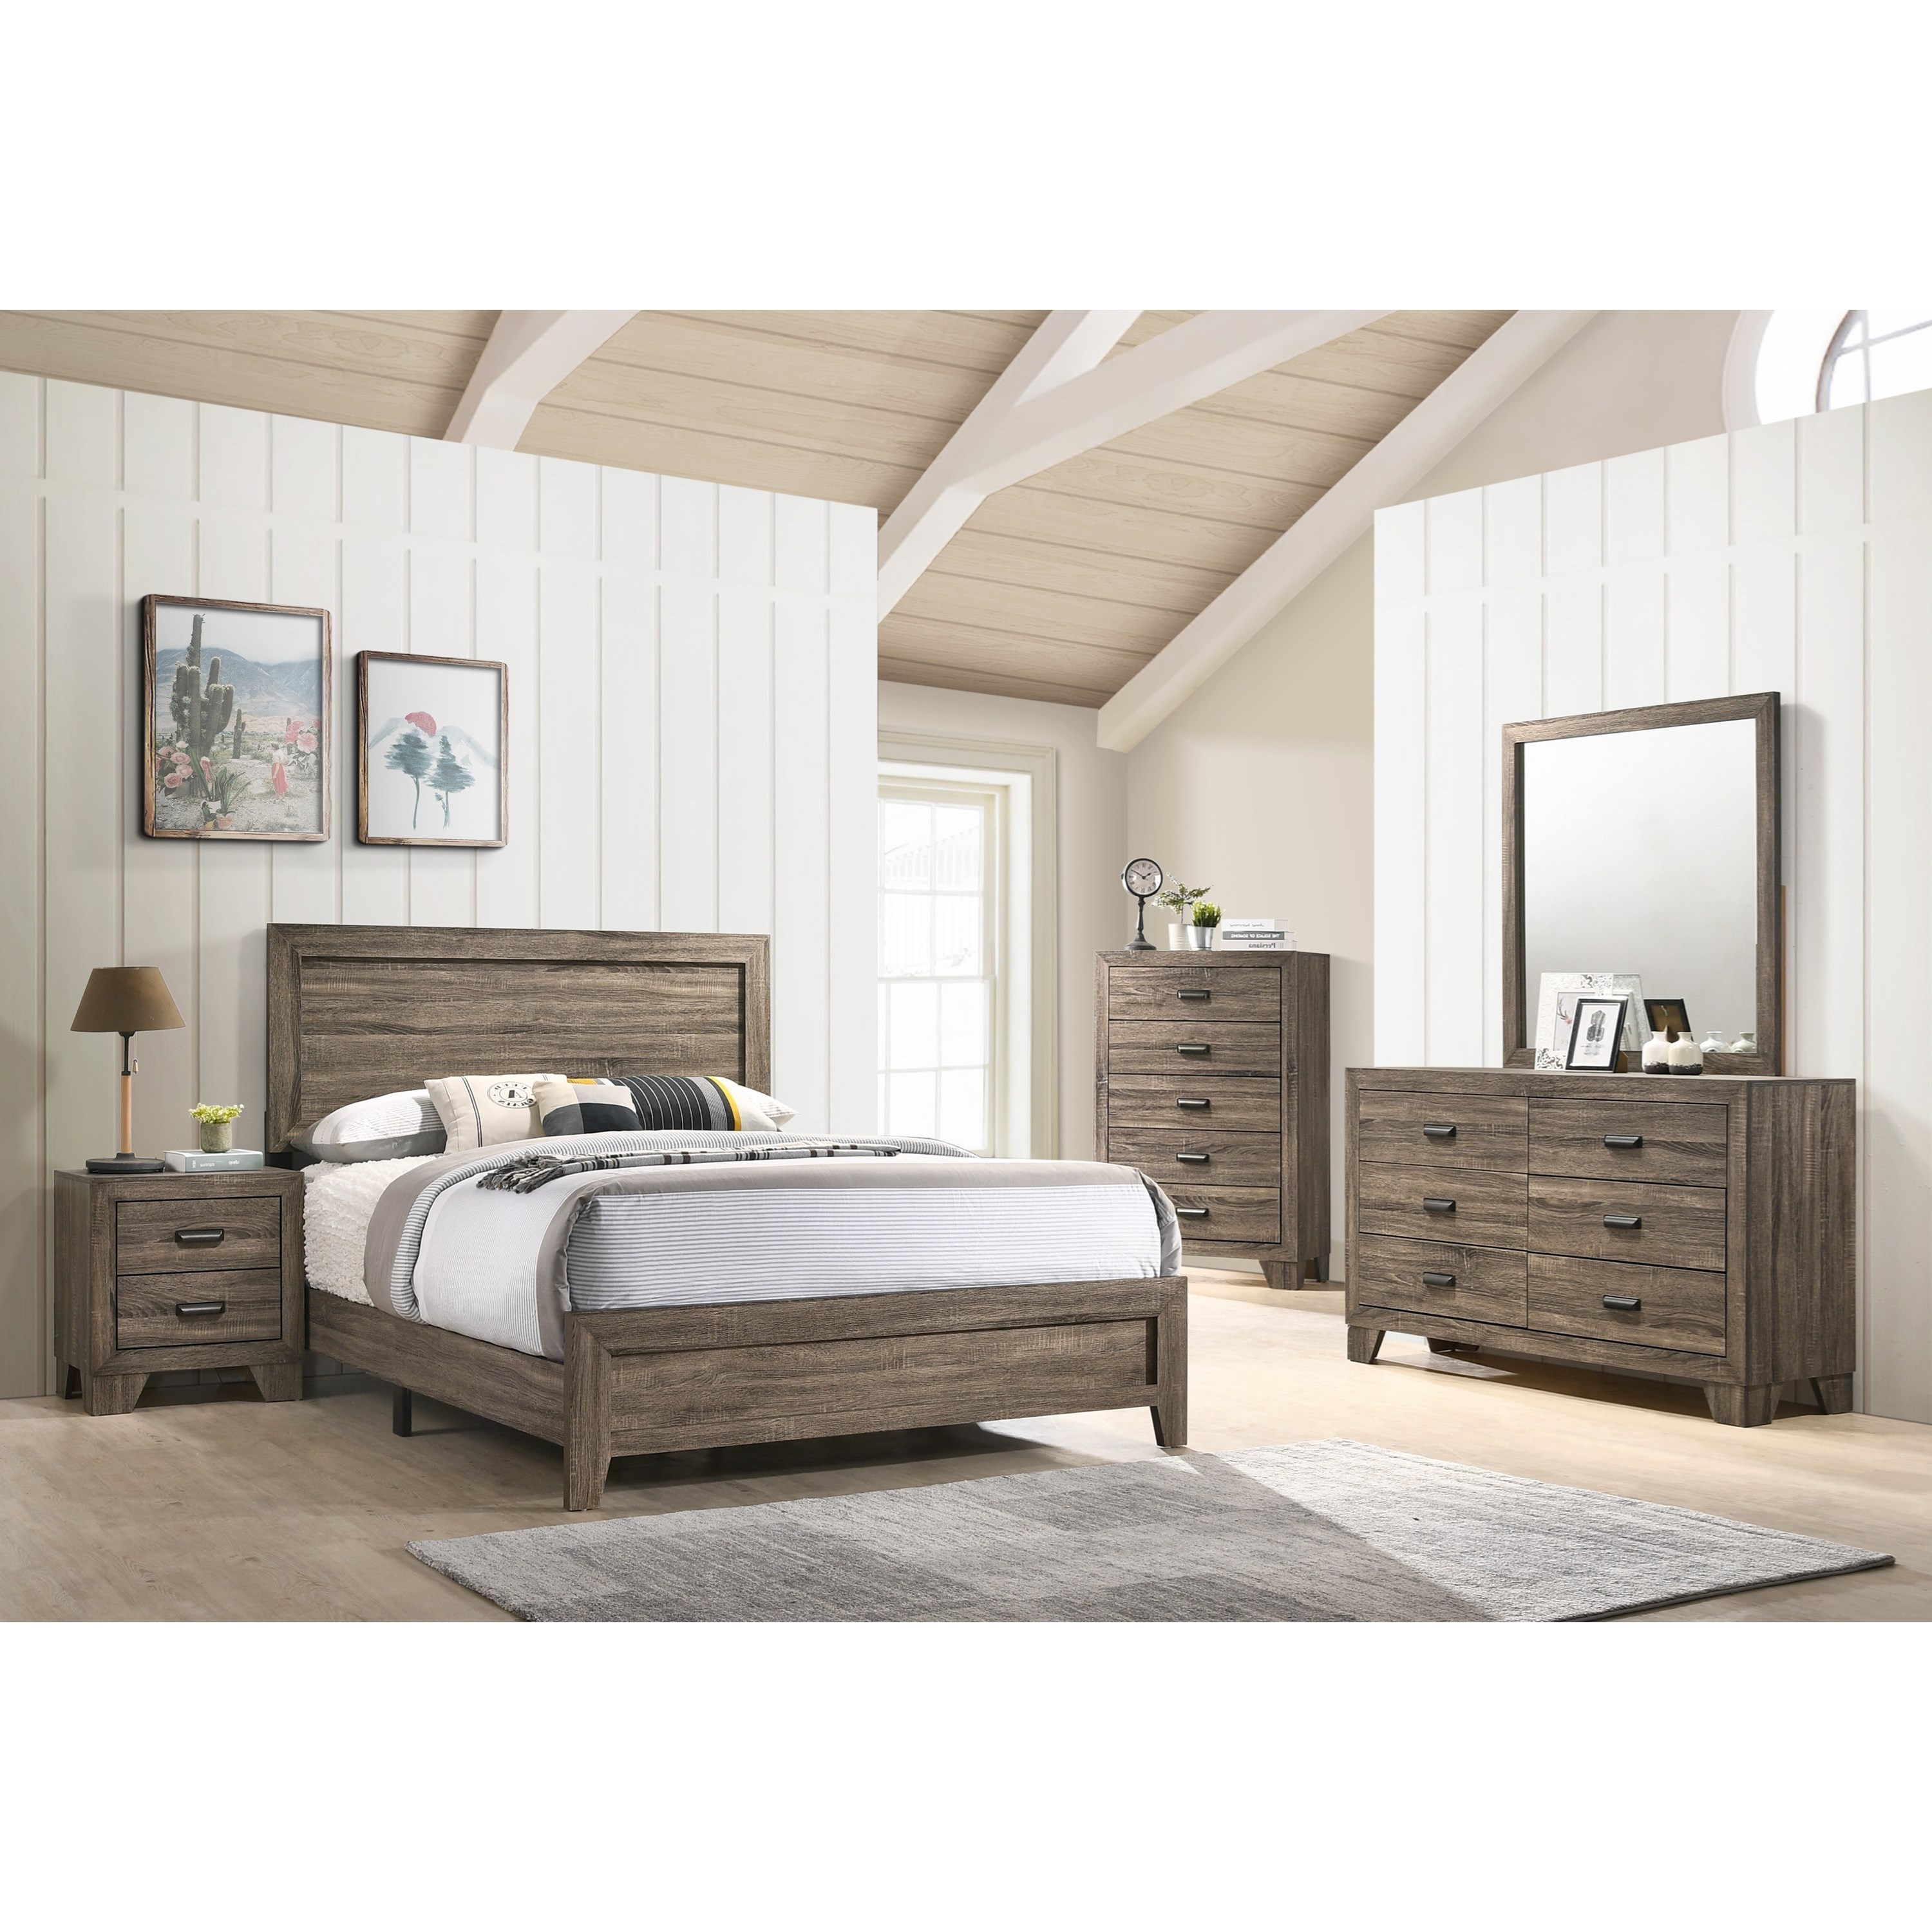 Millie California King Bedroom Group by Crown Mark at Northeast Factory Direct